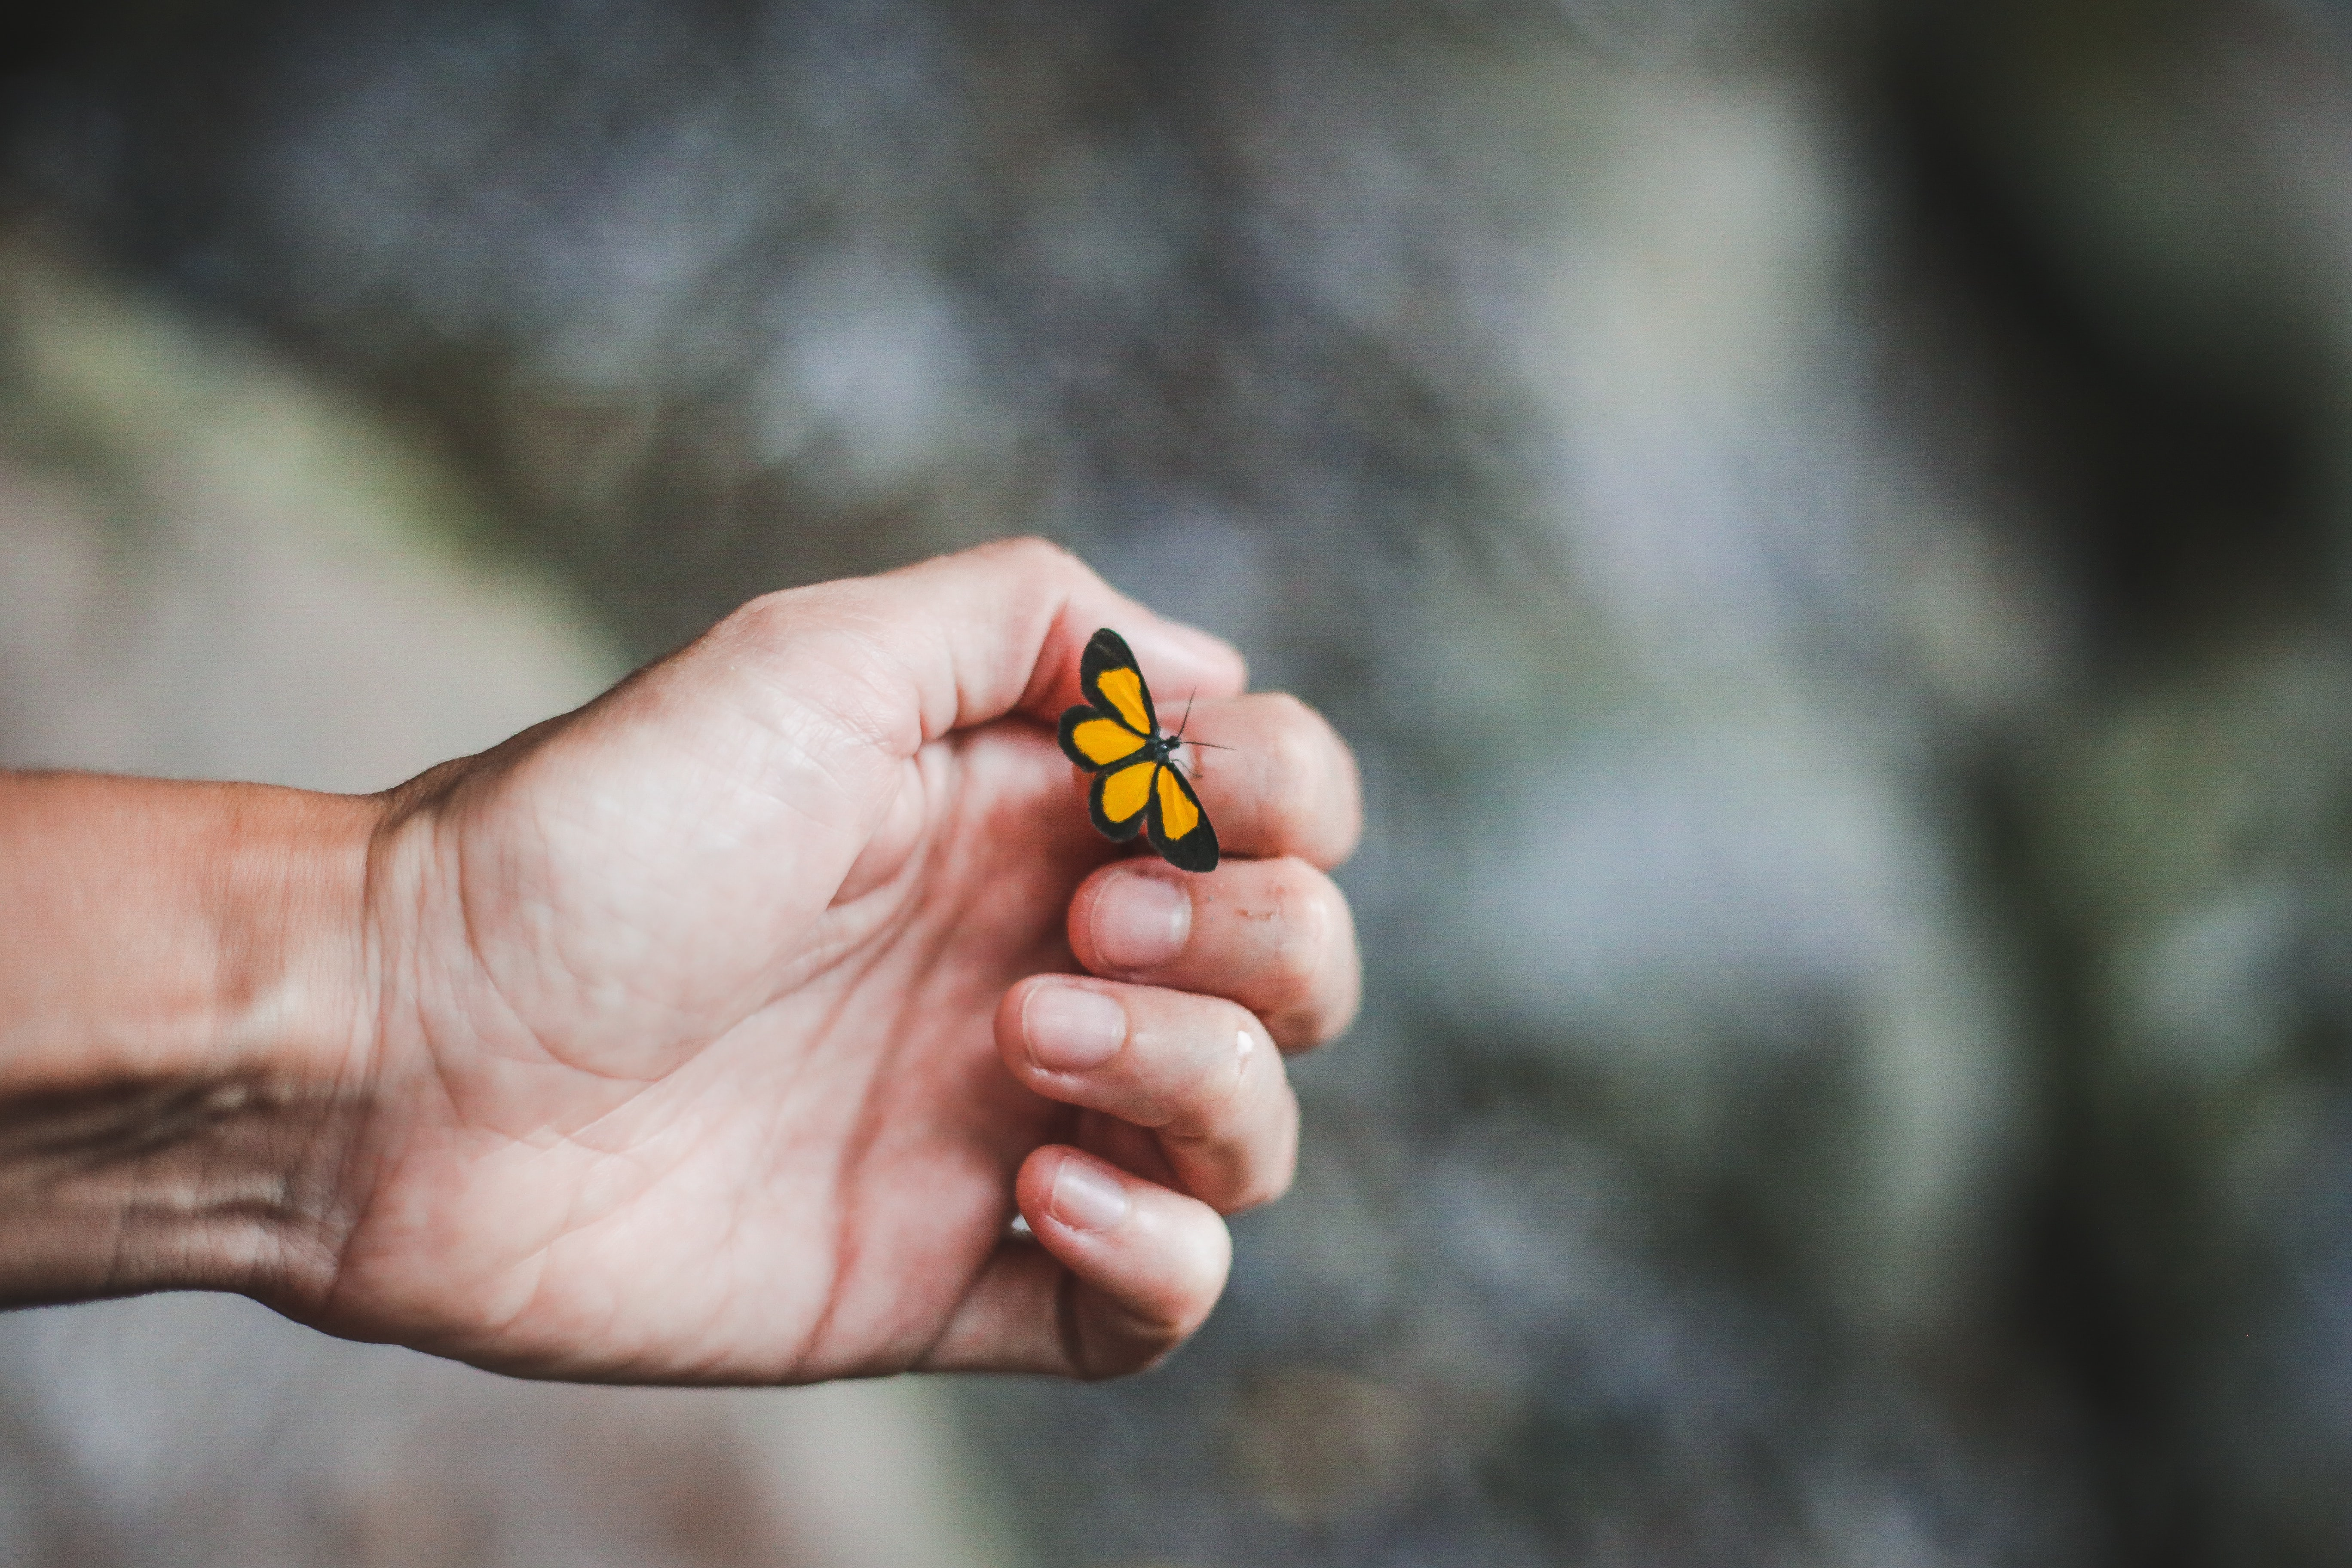 An outstreched hand and wrist, figers lightly curled, on which rests a vibrant yellow moth or butterfly.